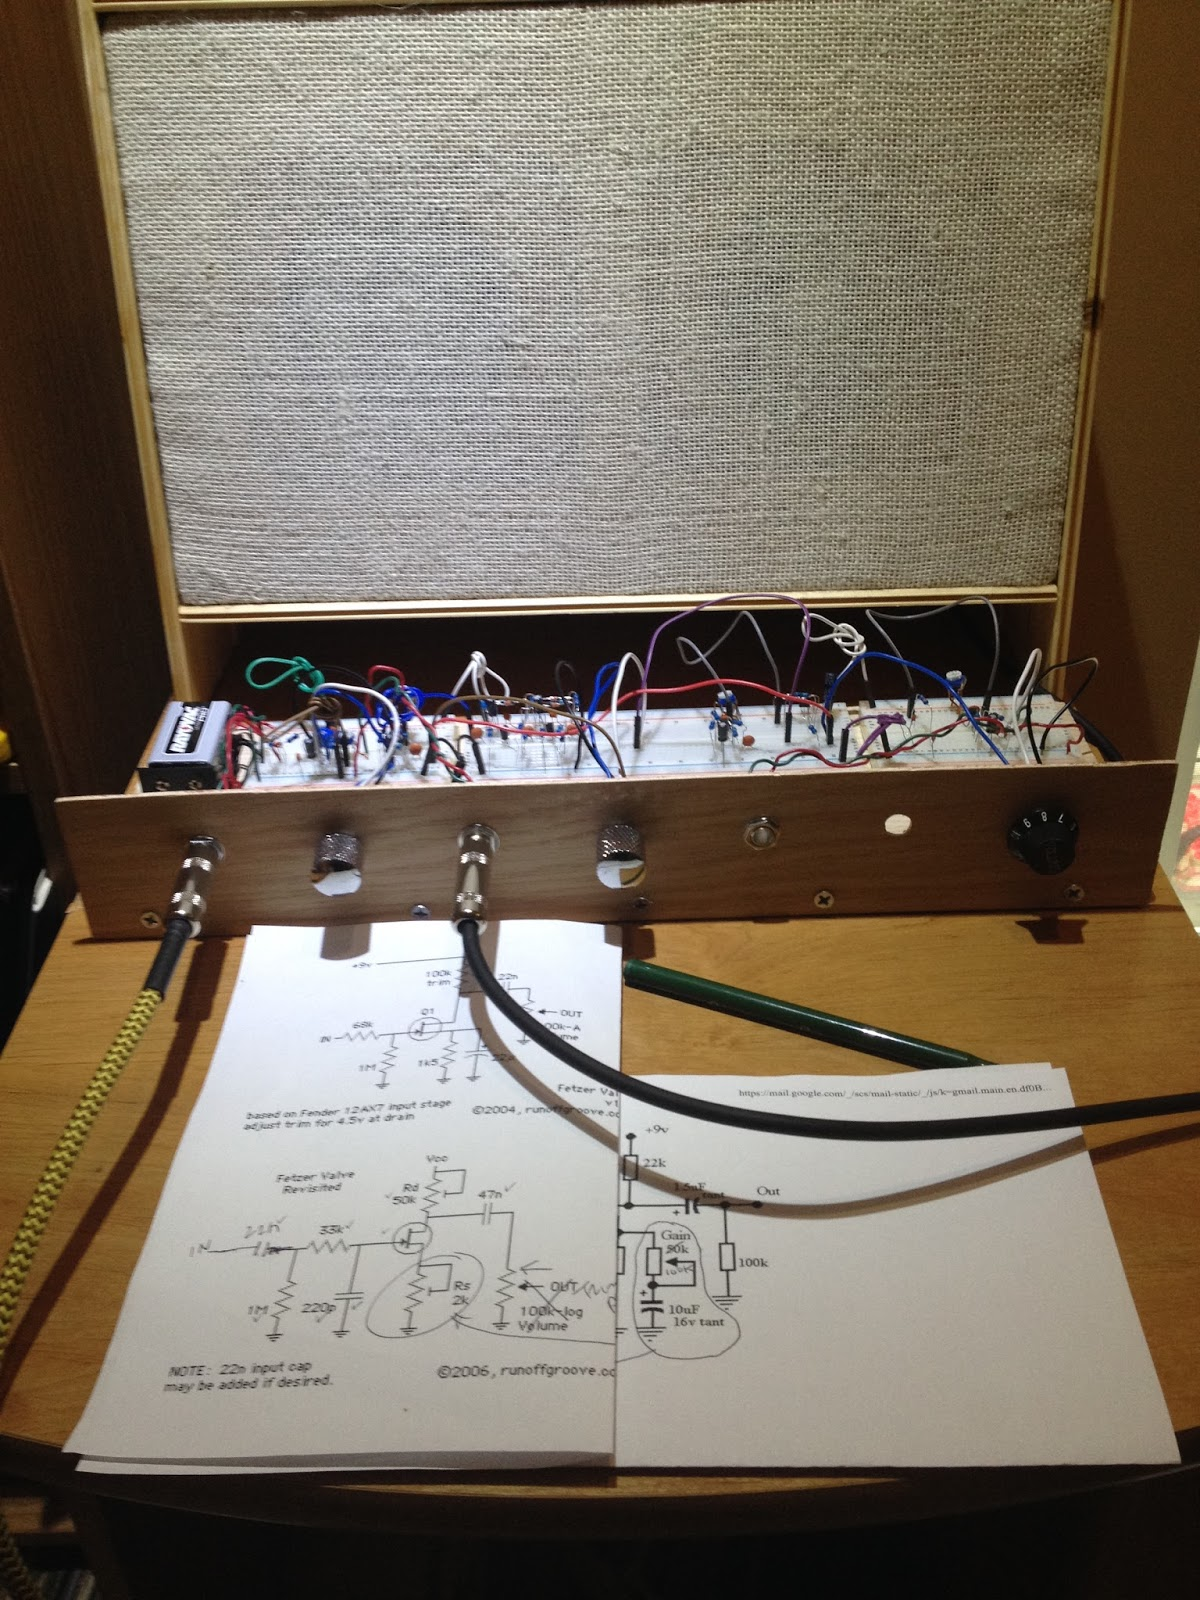 These Old Guitars 2015 Alembic Tube Preamp Schematic In Order To Optimize This Circuit For A Variety Of Guitar Pickups I Found Could Vary The Value Rs10k Between J201 Transistor Source And Ground